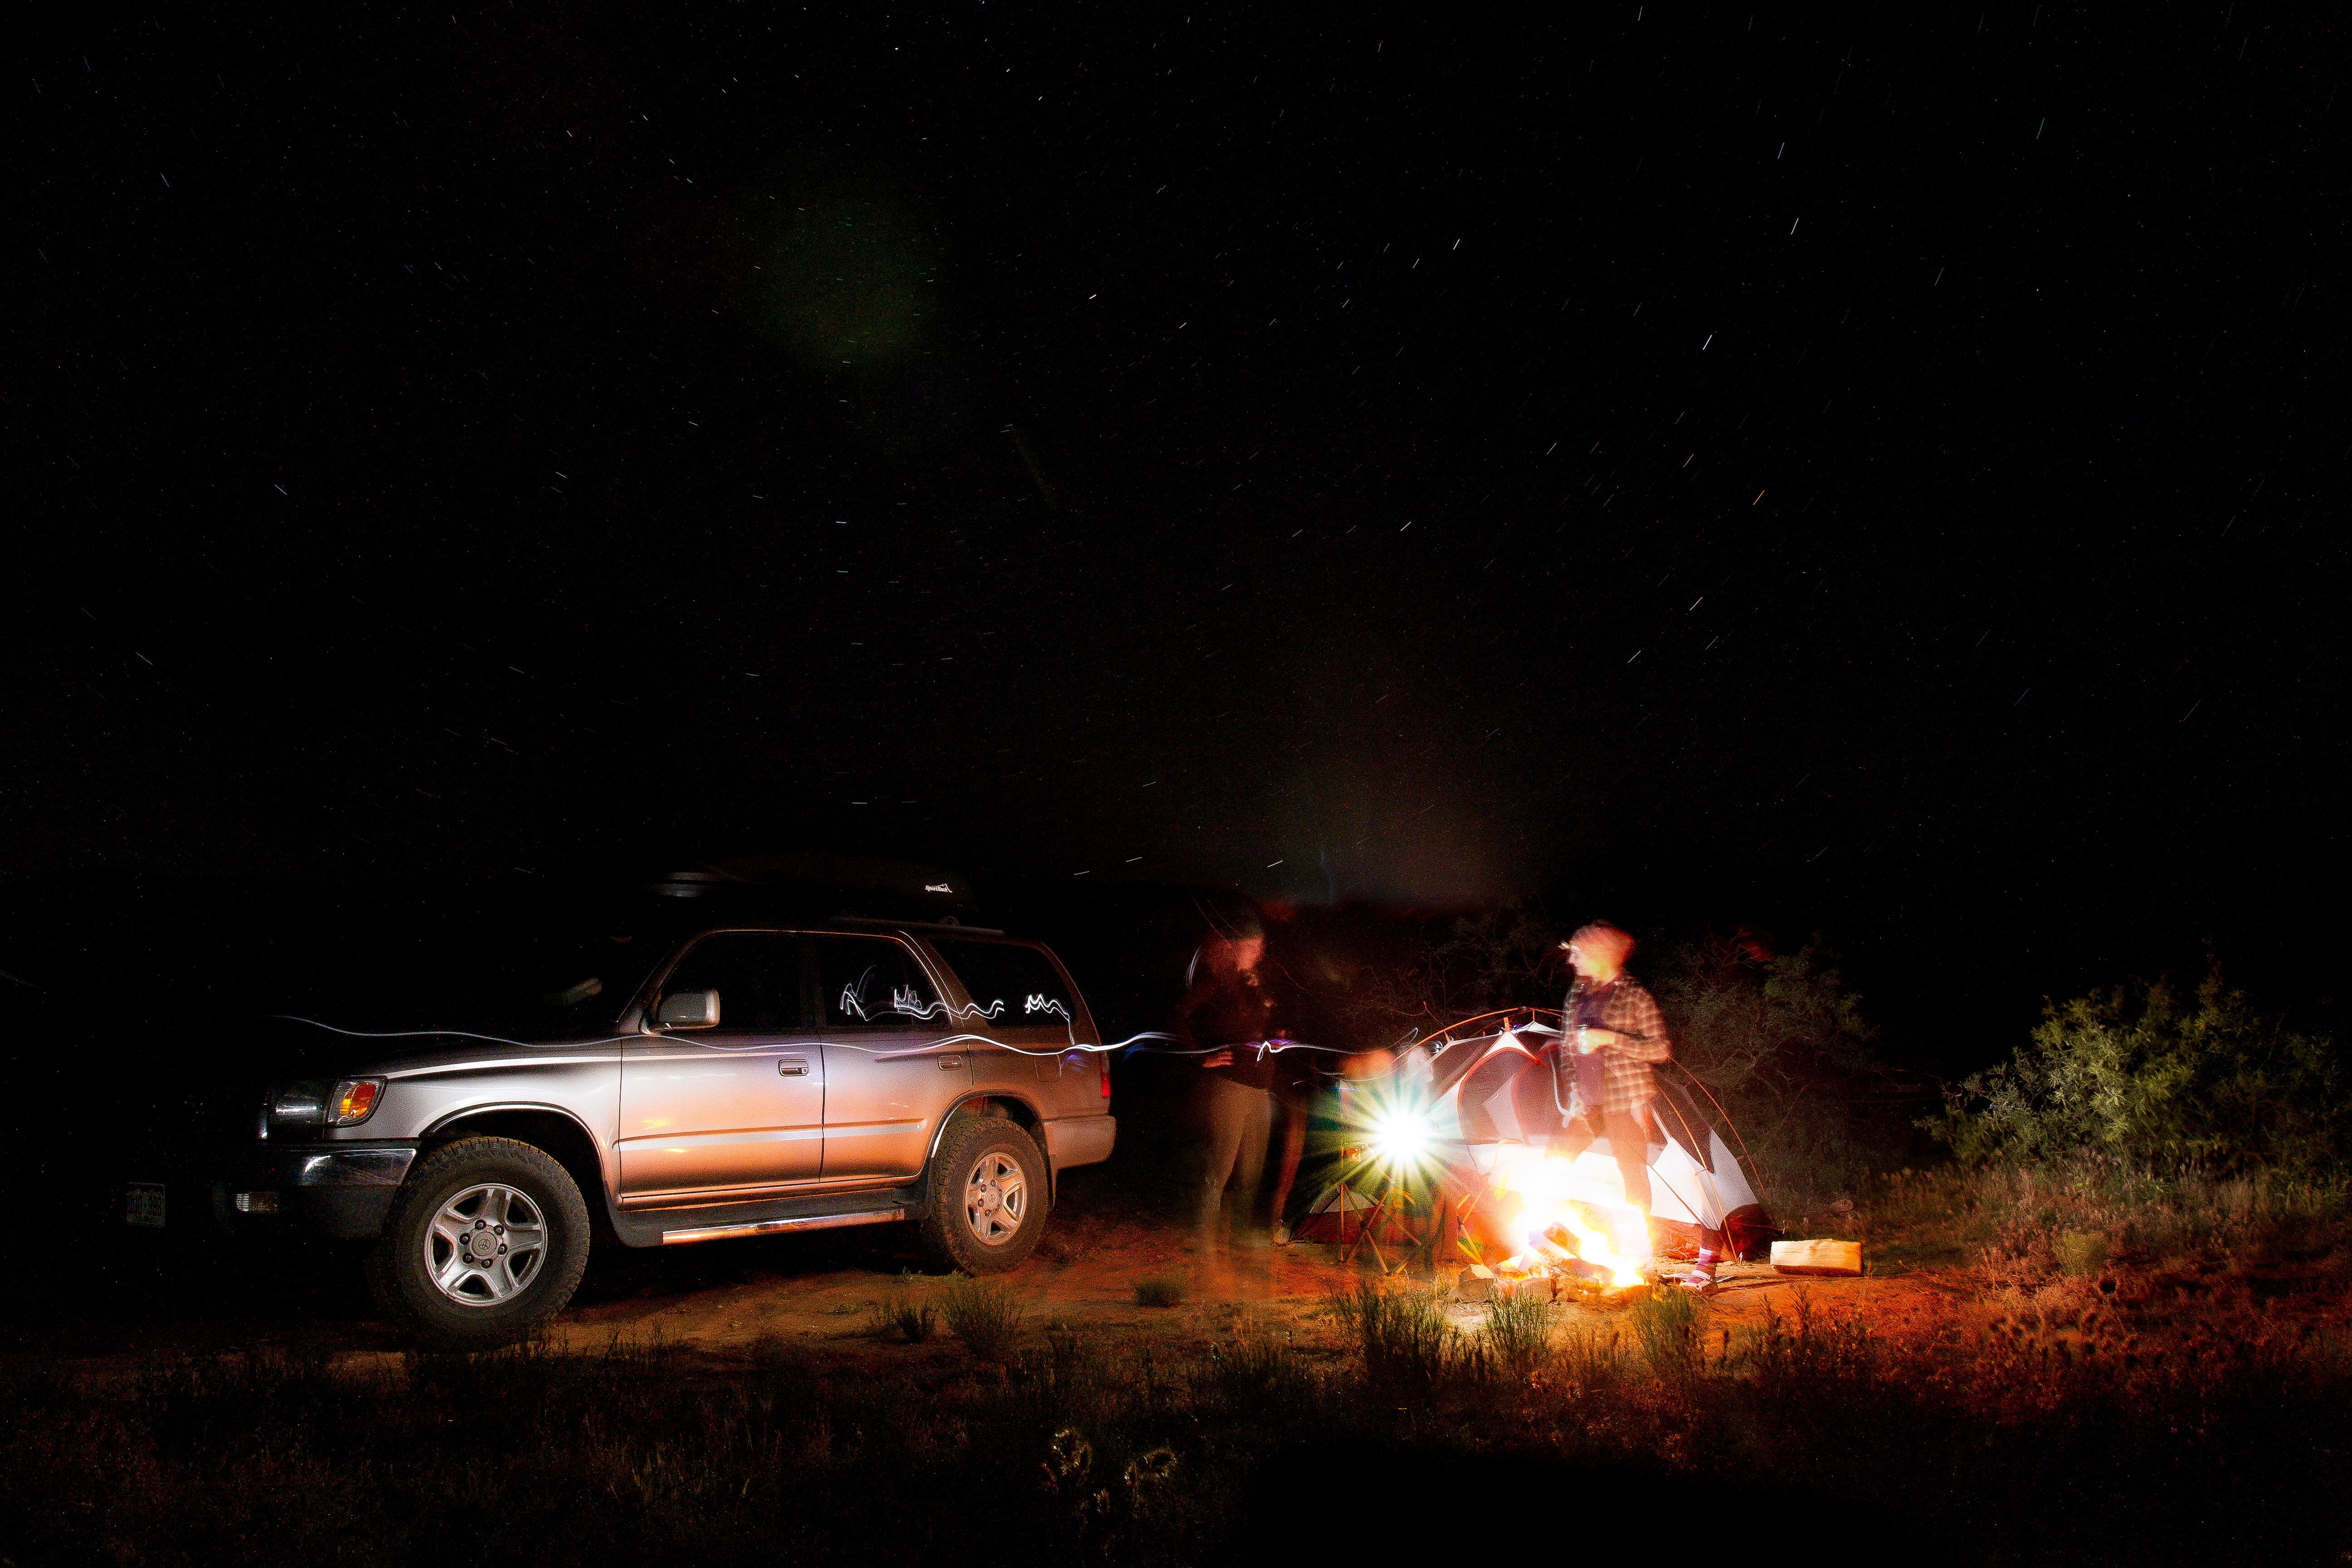 Long exposure photo of people at night by the SUV and the tent camping in Sedona.